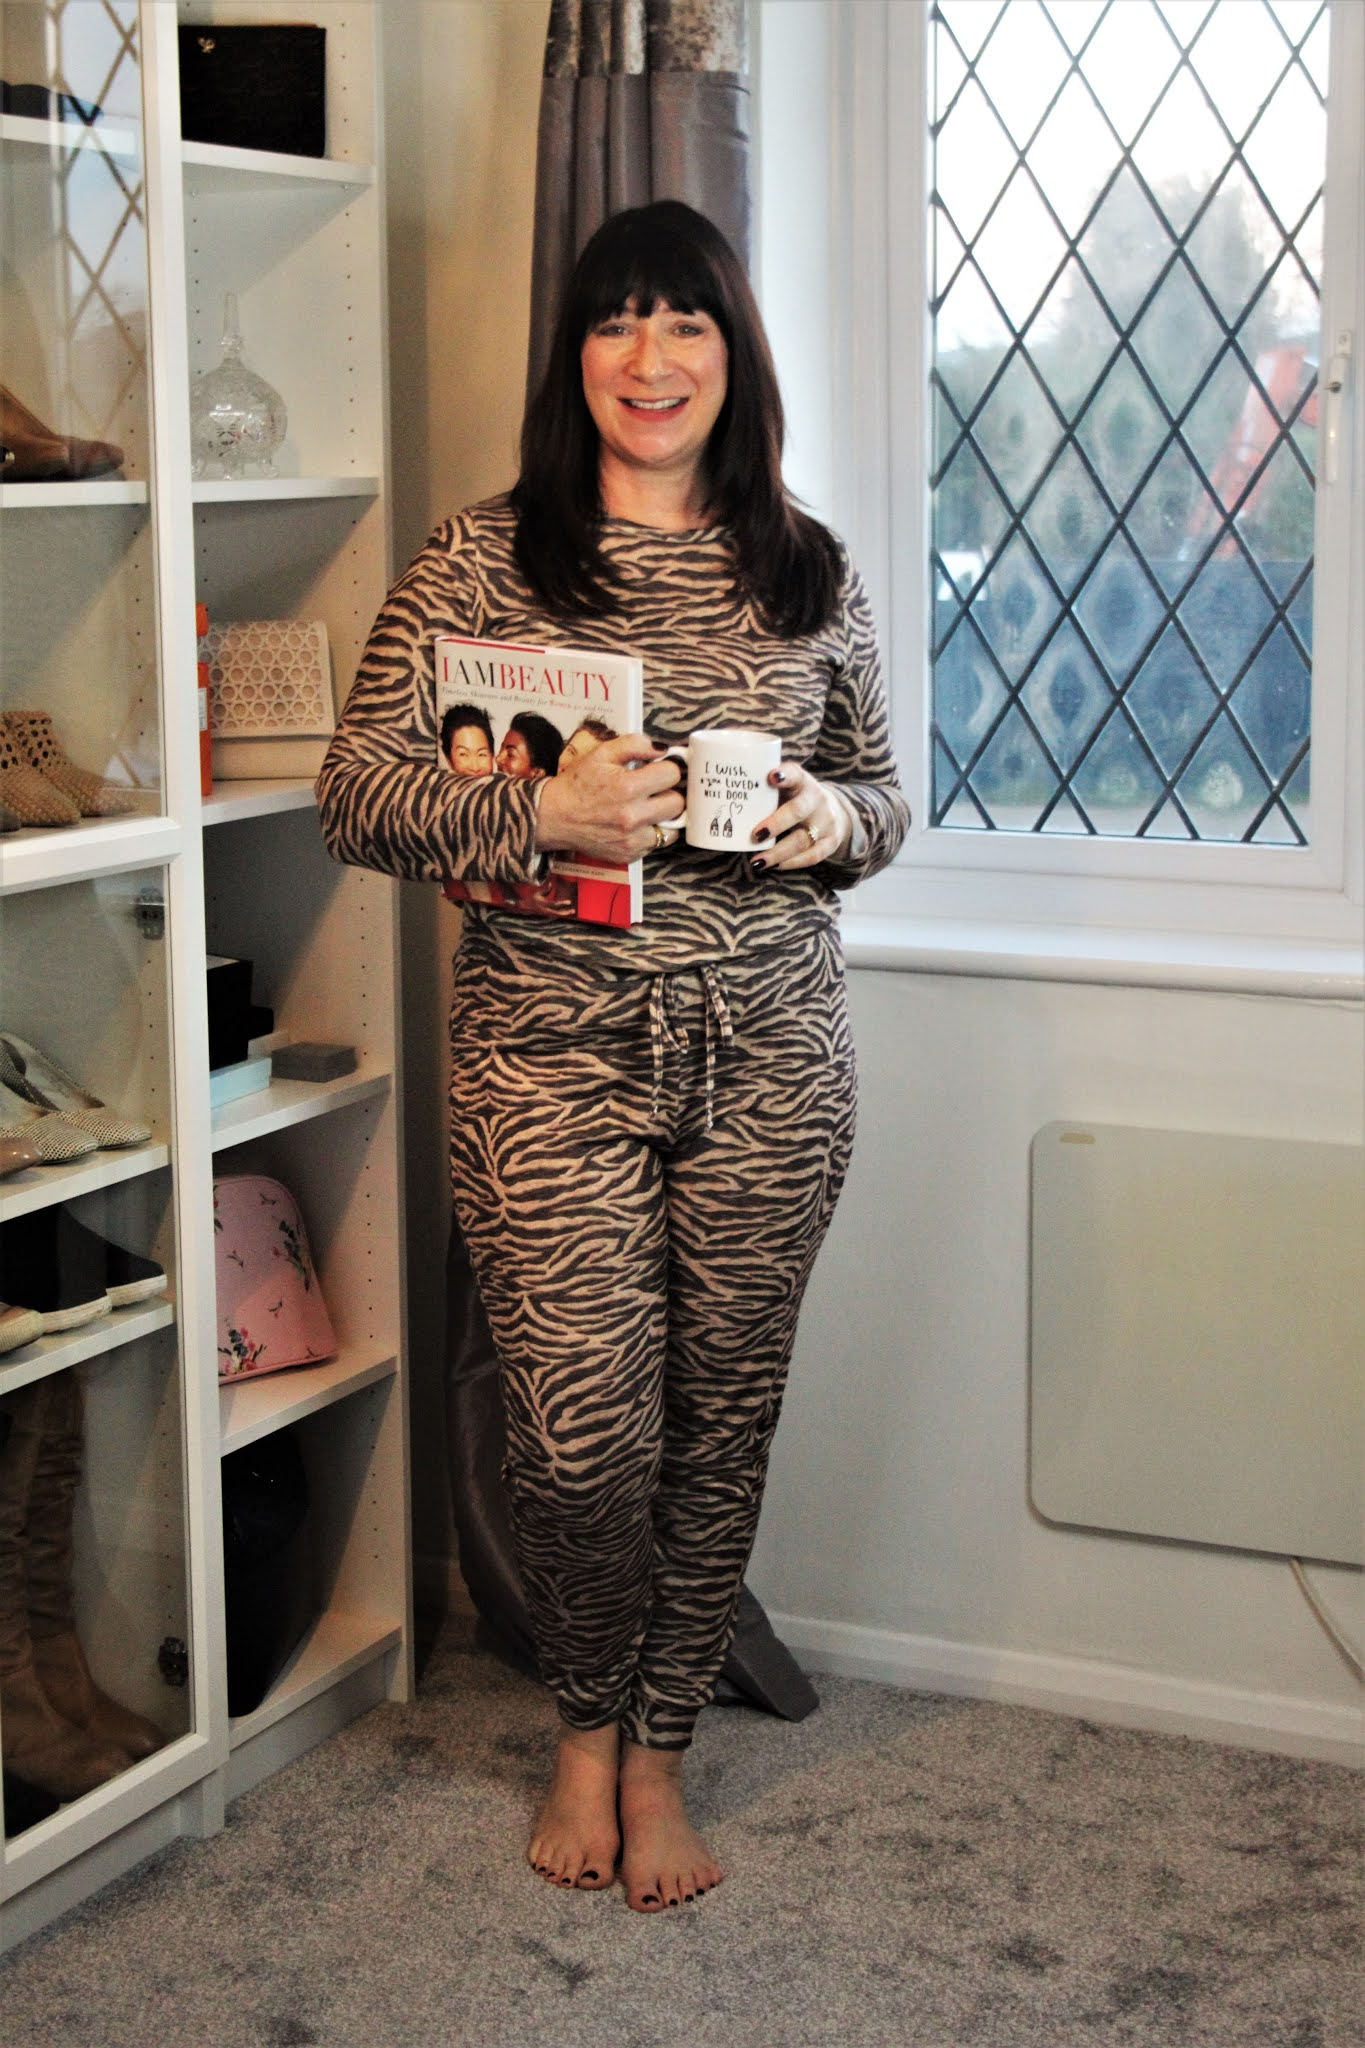 Blogger Jacqui Berry from Mummabstylish in animal print all-in-one from Bonmarche